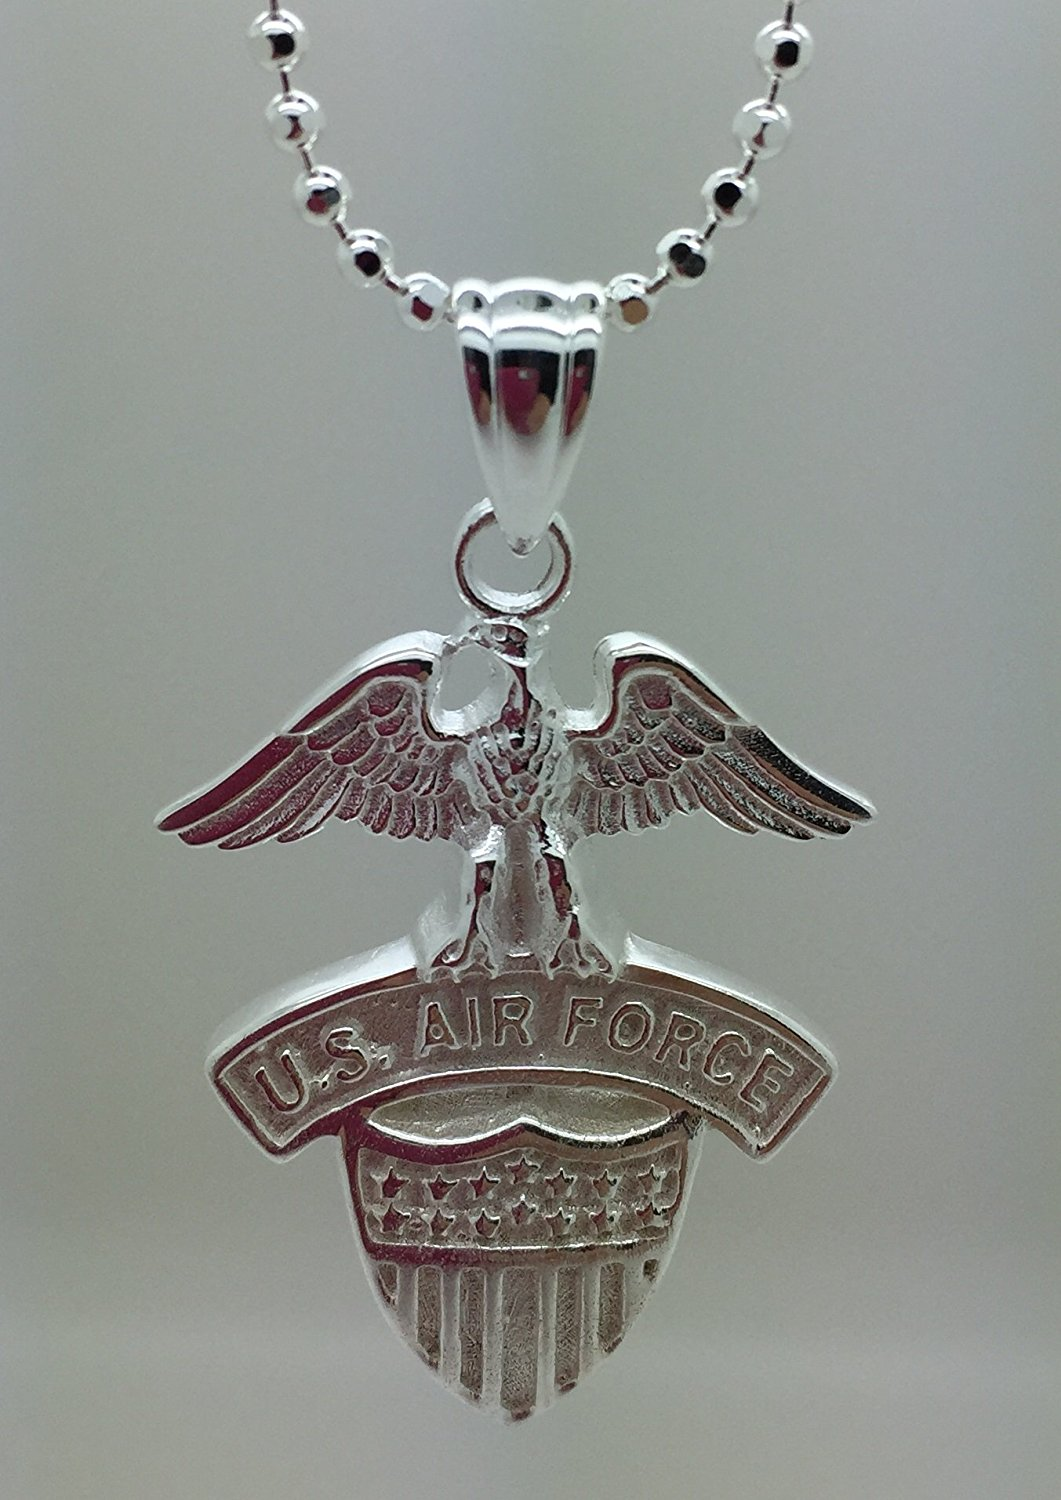 "US Air Force .925 Silver Pendant Necklace - Gifts For Men And Women - USAF Military Jewelry - United States Air Force Charm And Chain - USAF Emblem (24"" Chain And Pendant, .925 Sterling Silver)"